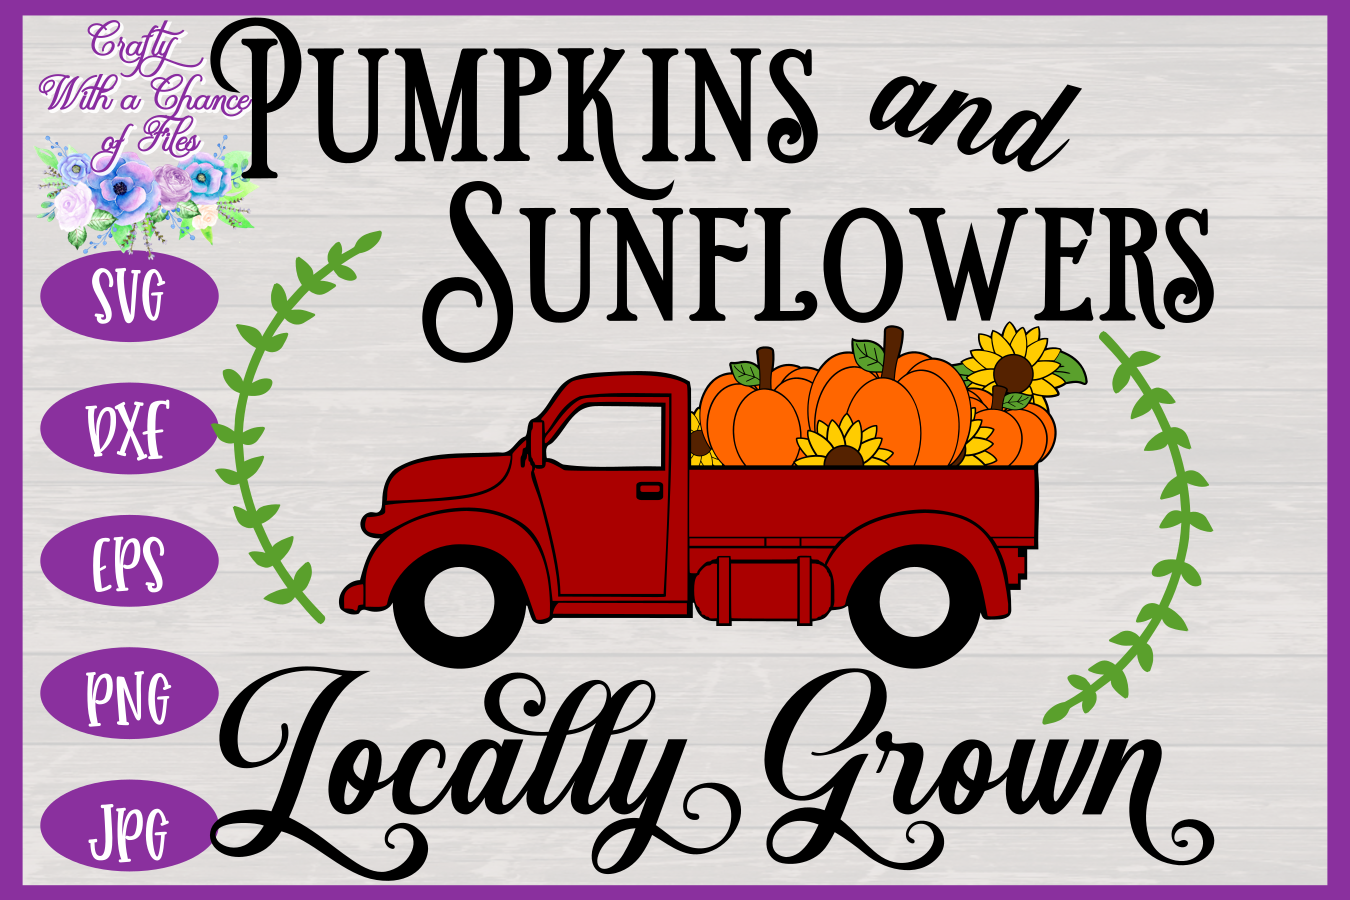 Pumpkins & Sunflowers Locally Grown SVG | Fall Truck SVG example image 3